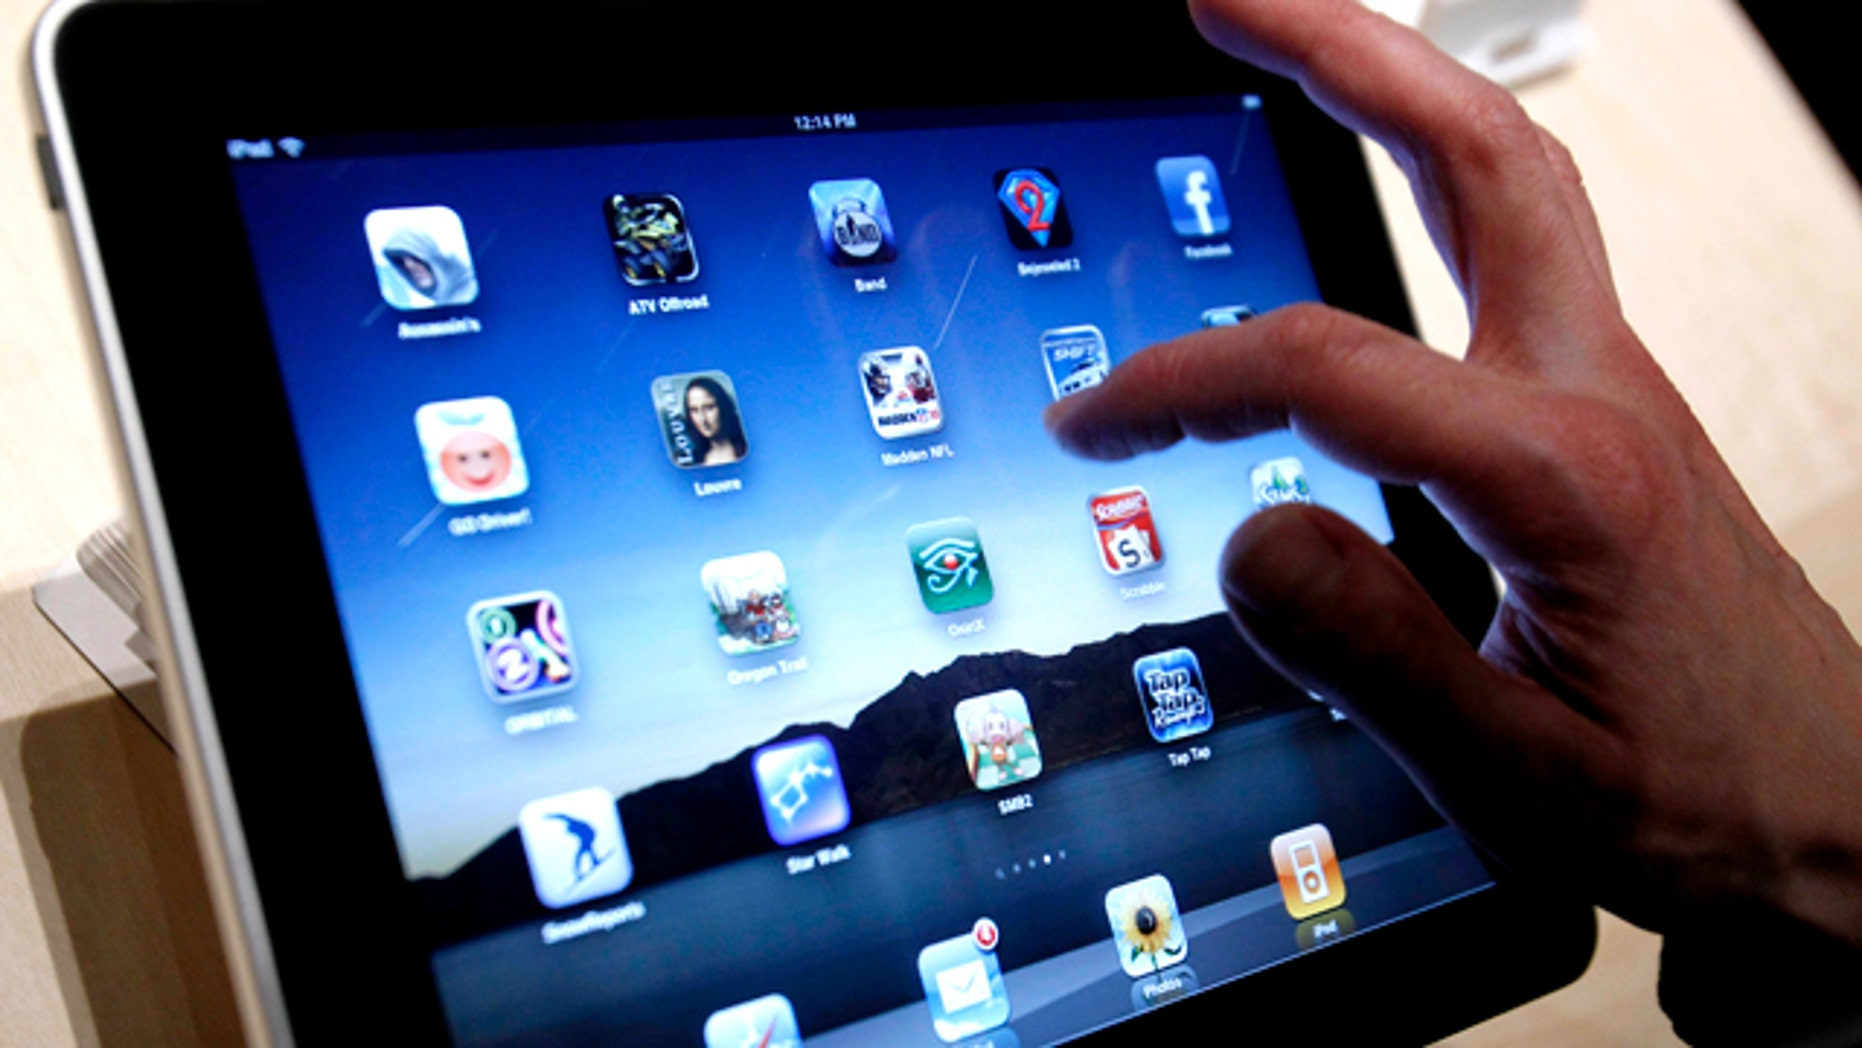 The iPad after it was unveiled at the Moscone Center in San Francisco in early 2010. Apple is expected to unveil the second generation of its wildly successful media tablet this week, widening its head start against competitors just starting to sell their first tablet computers.